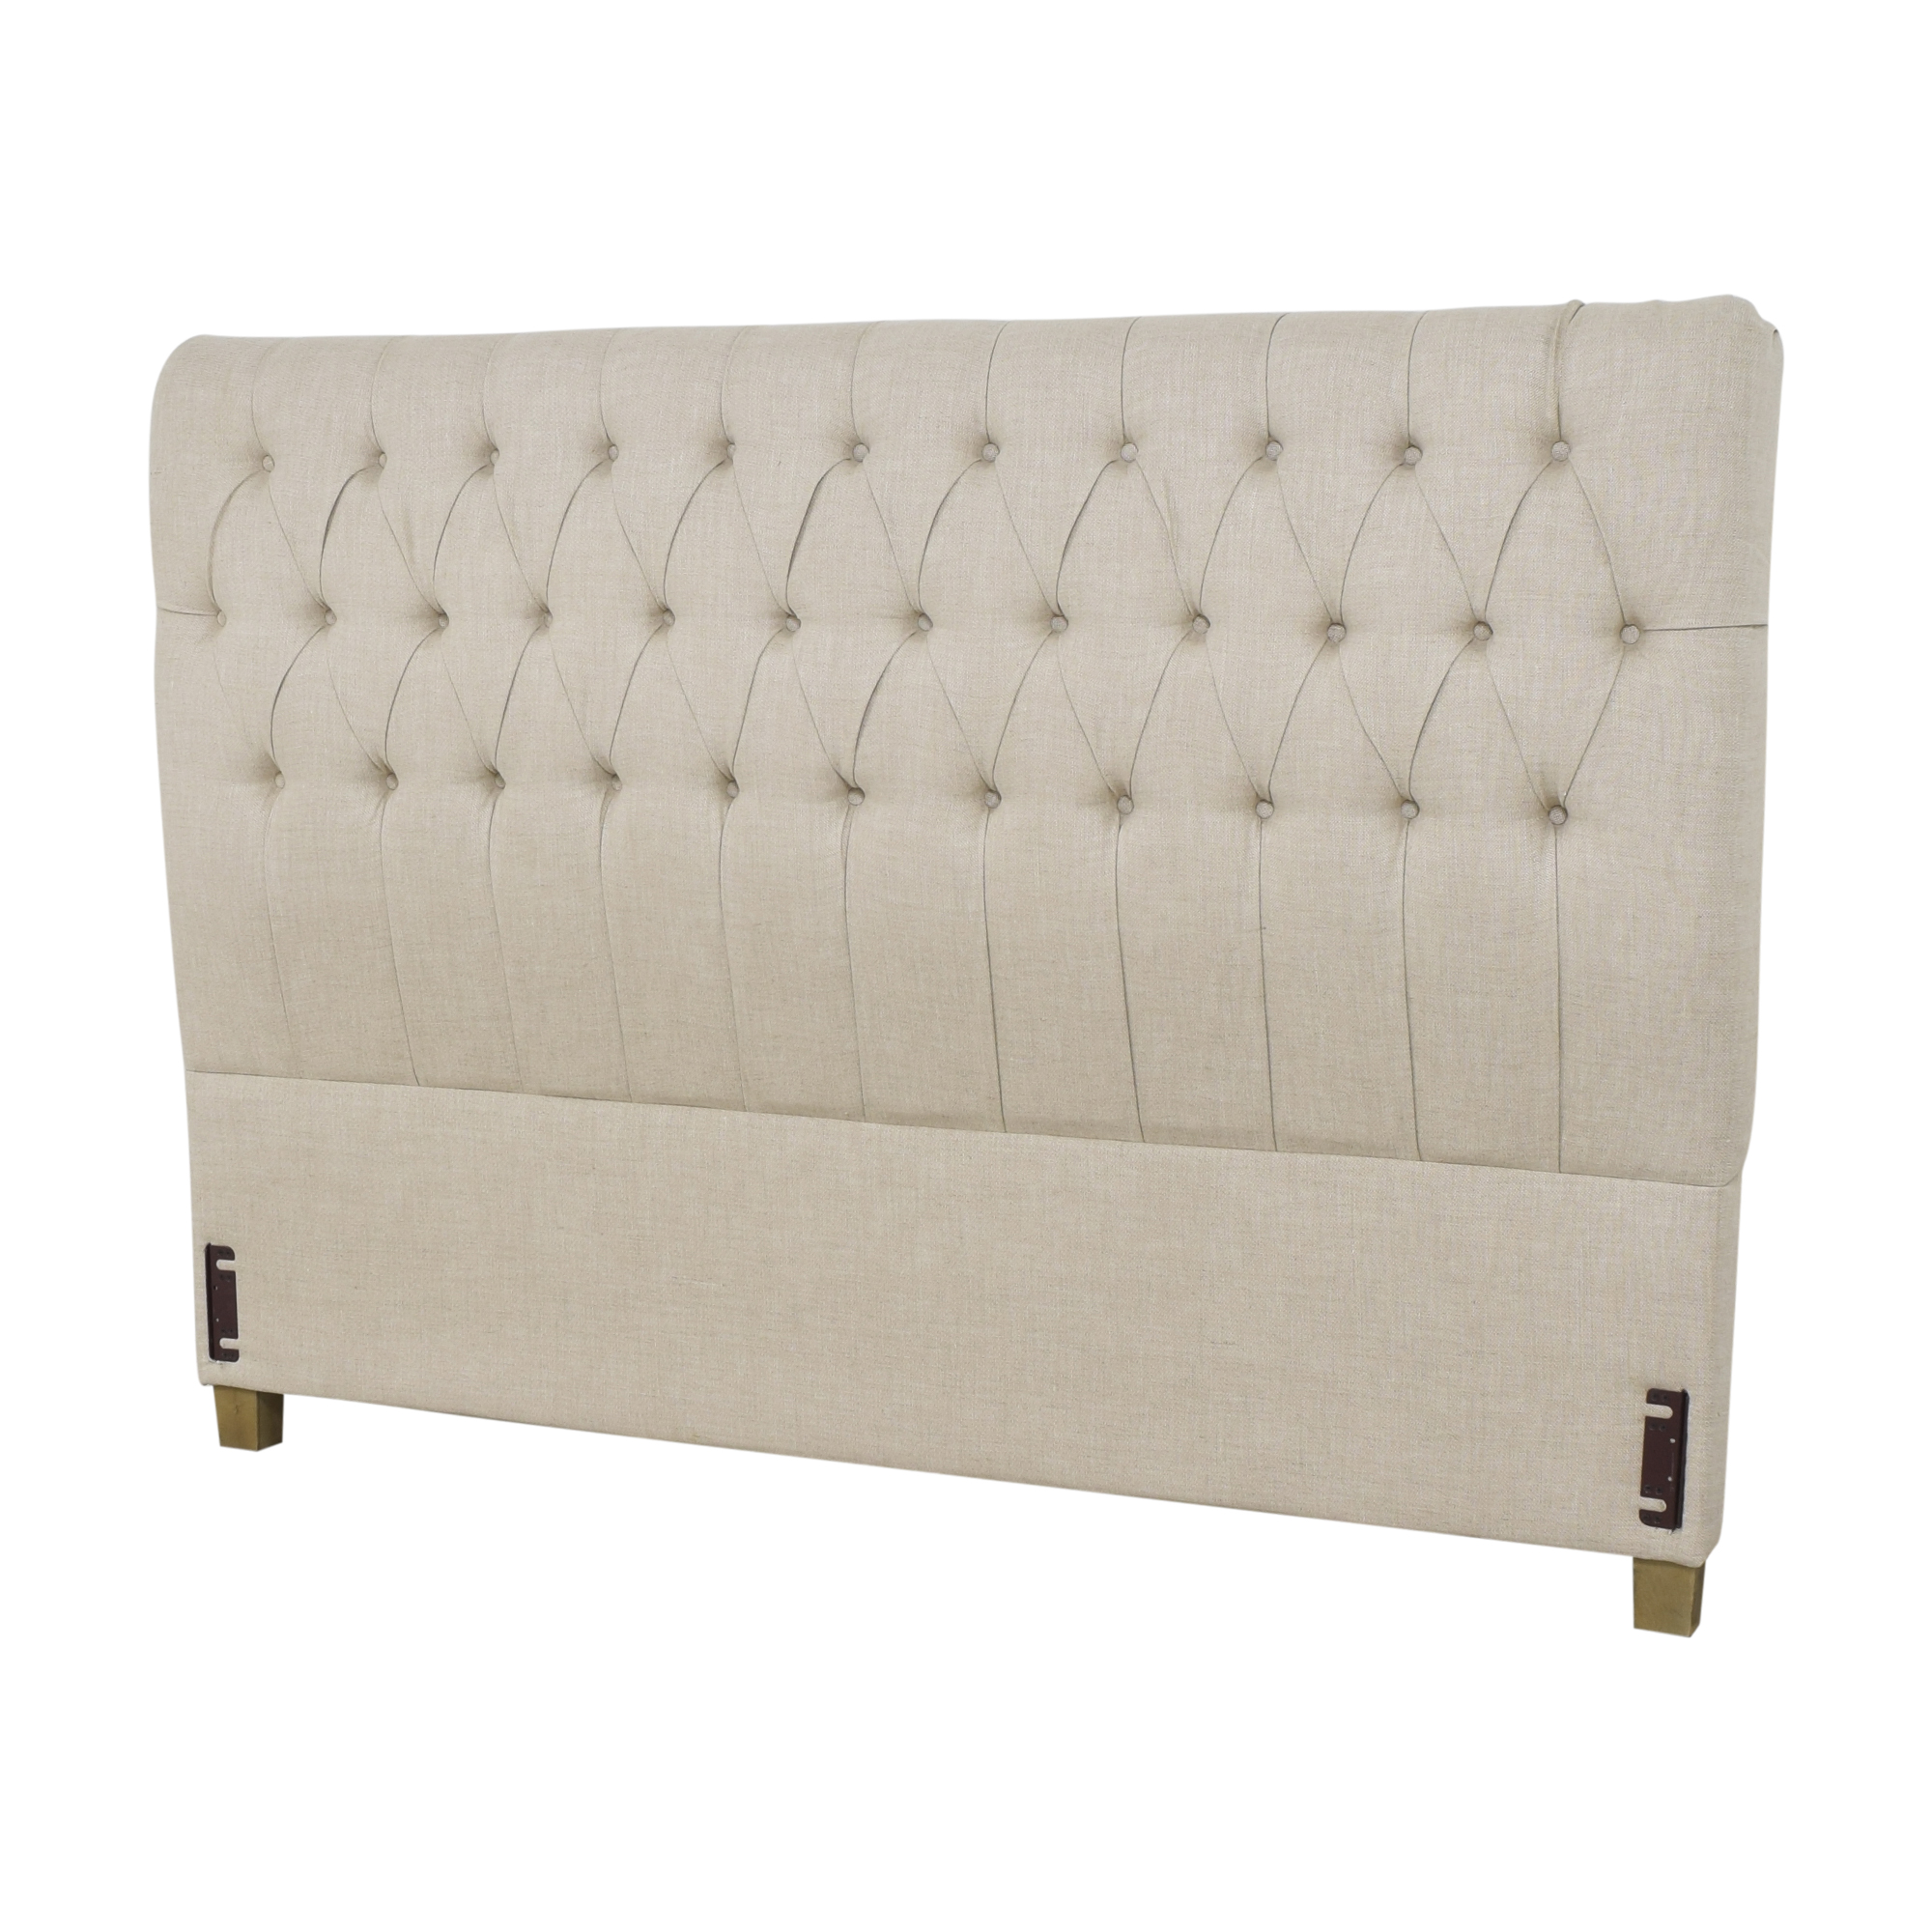 Restoration Hardware Tufted King Headboard / Beds